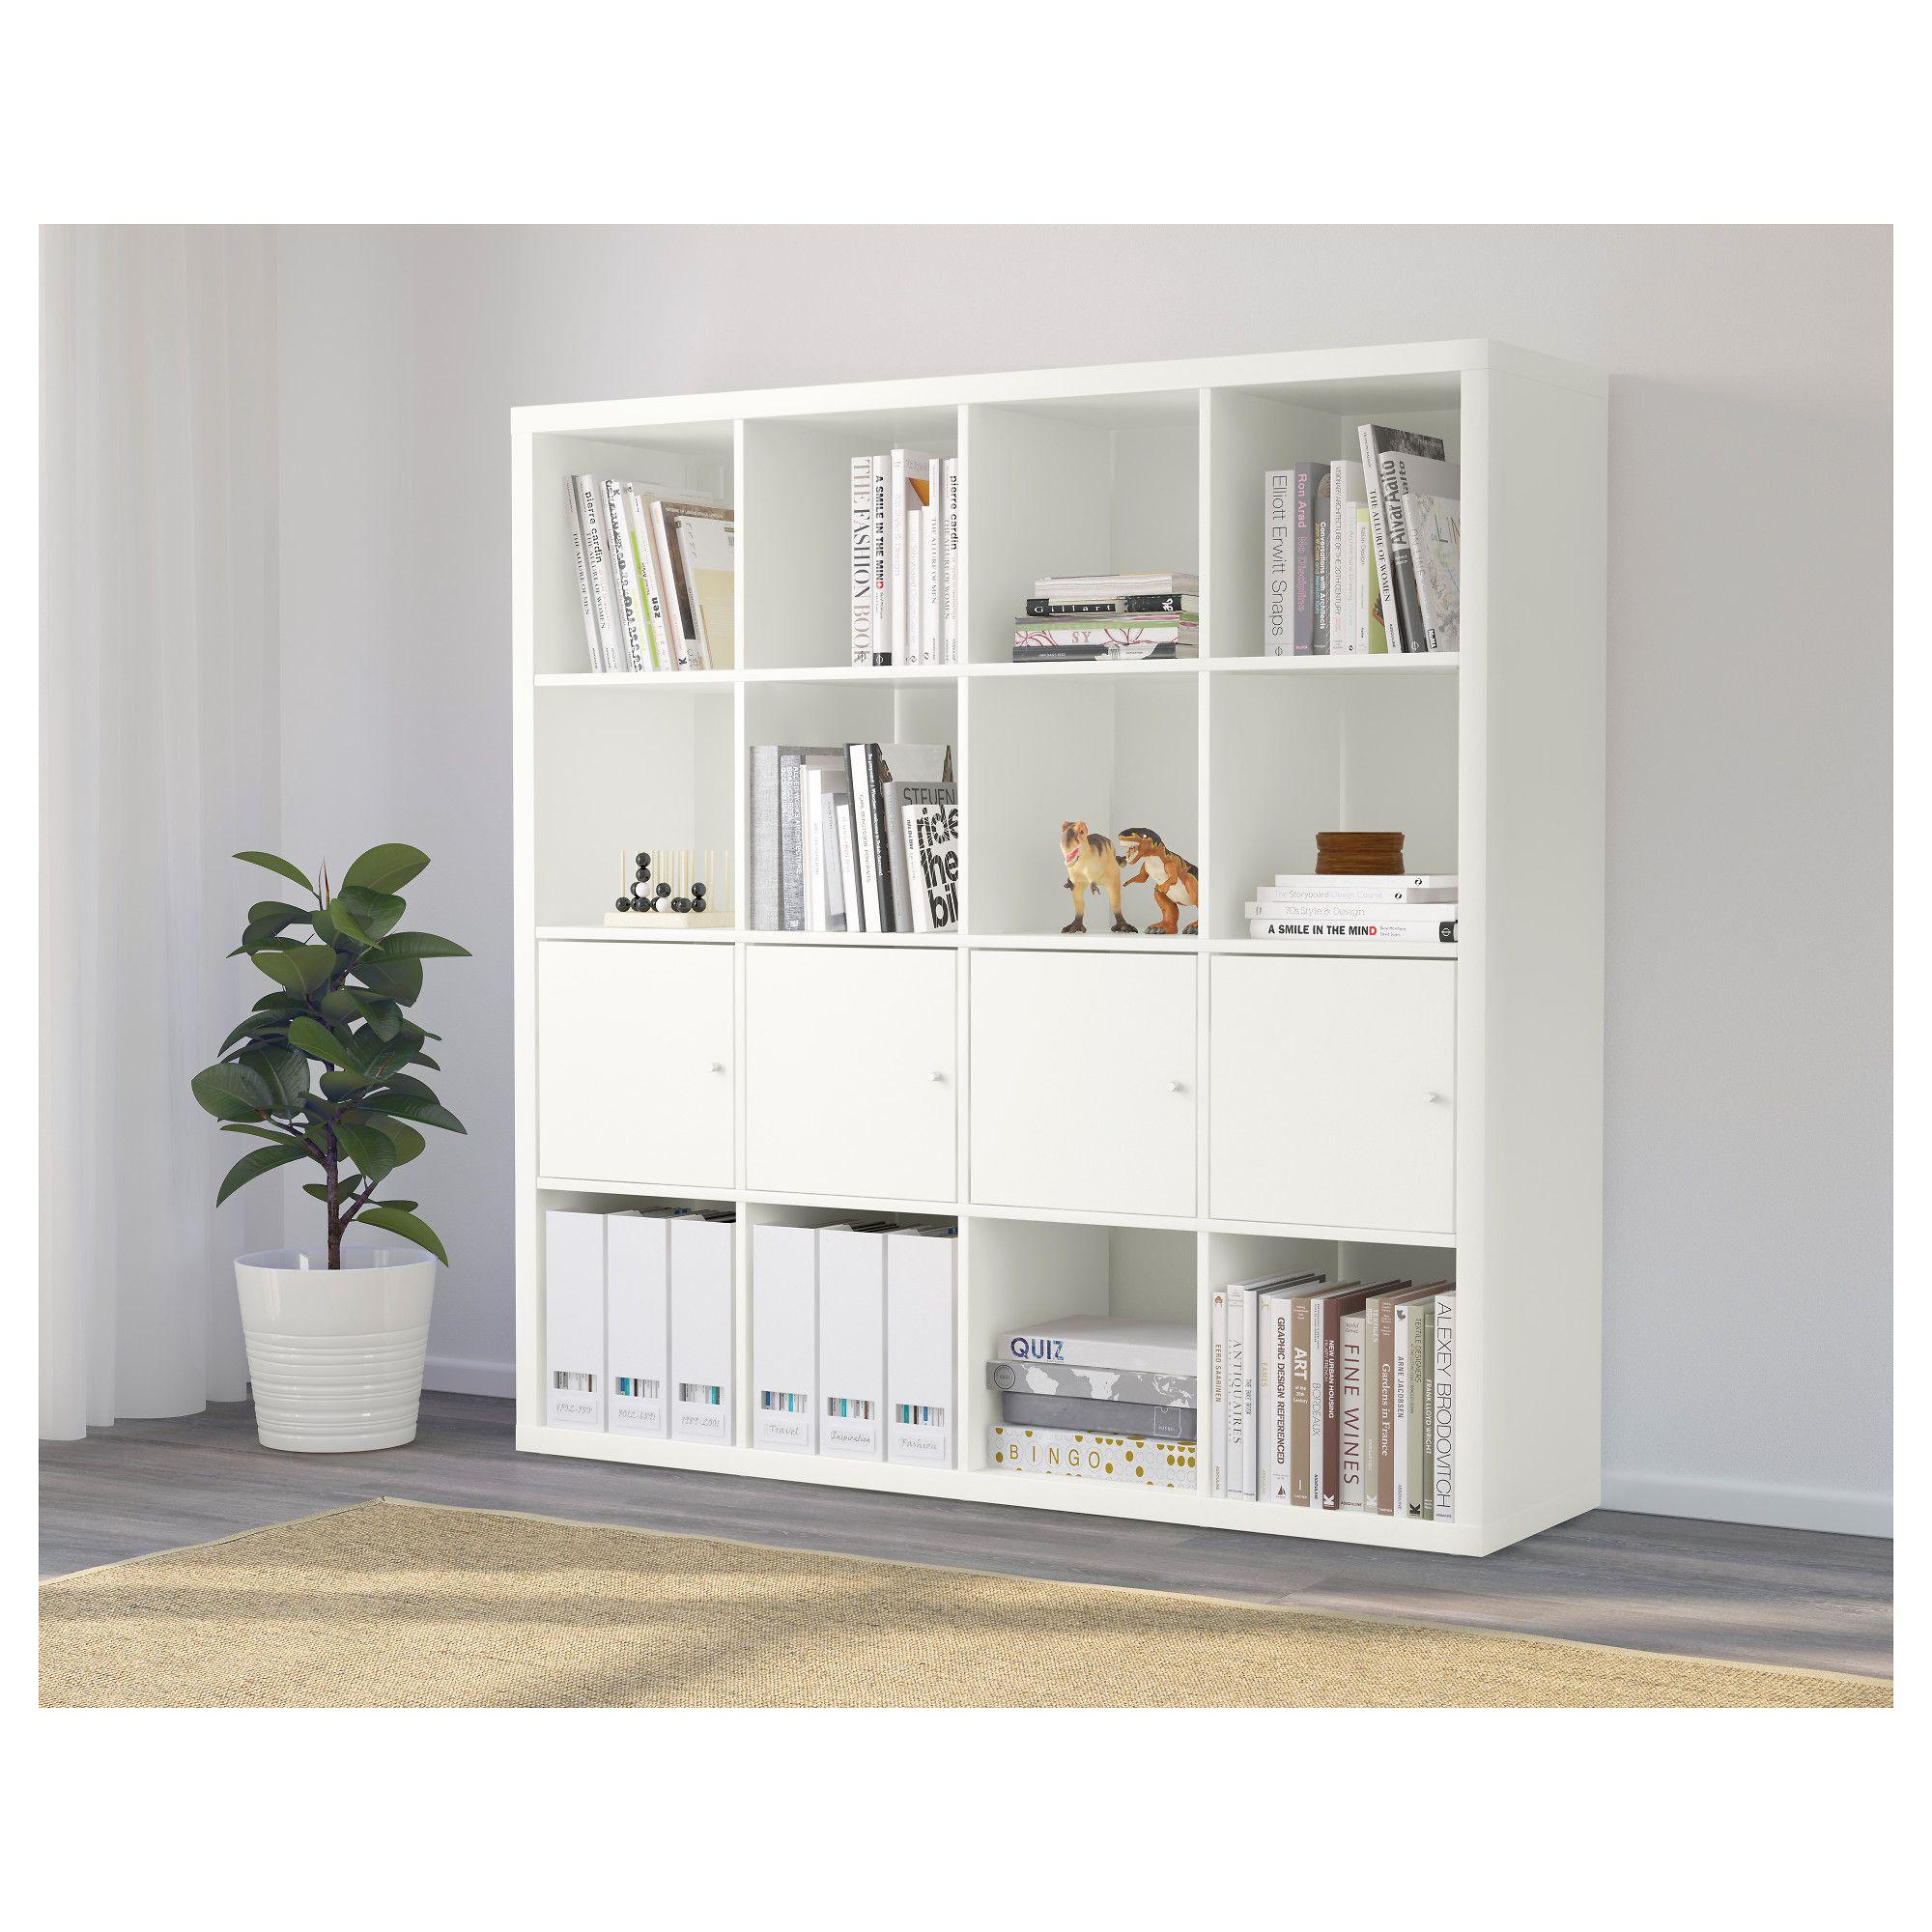 Ikea Kallax Weiß Ikea Kallax Shelf Unit With 4 Inserts White Kallax